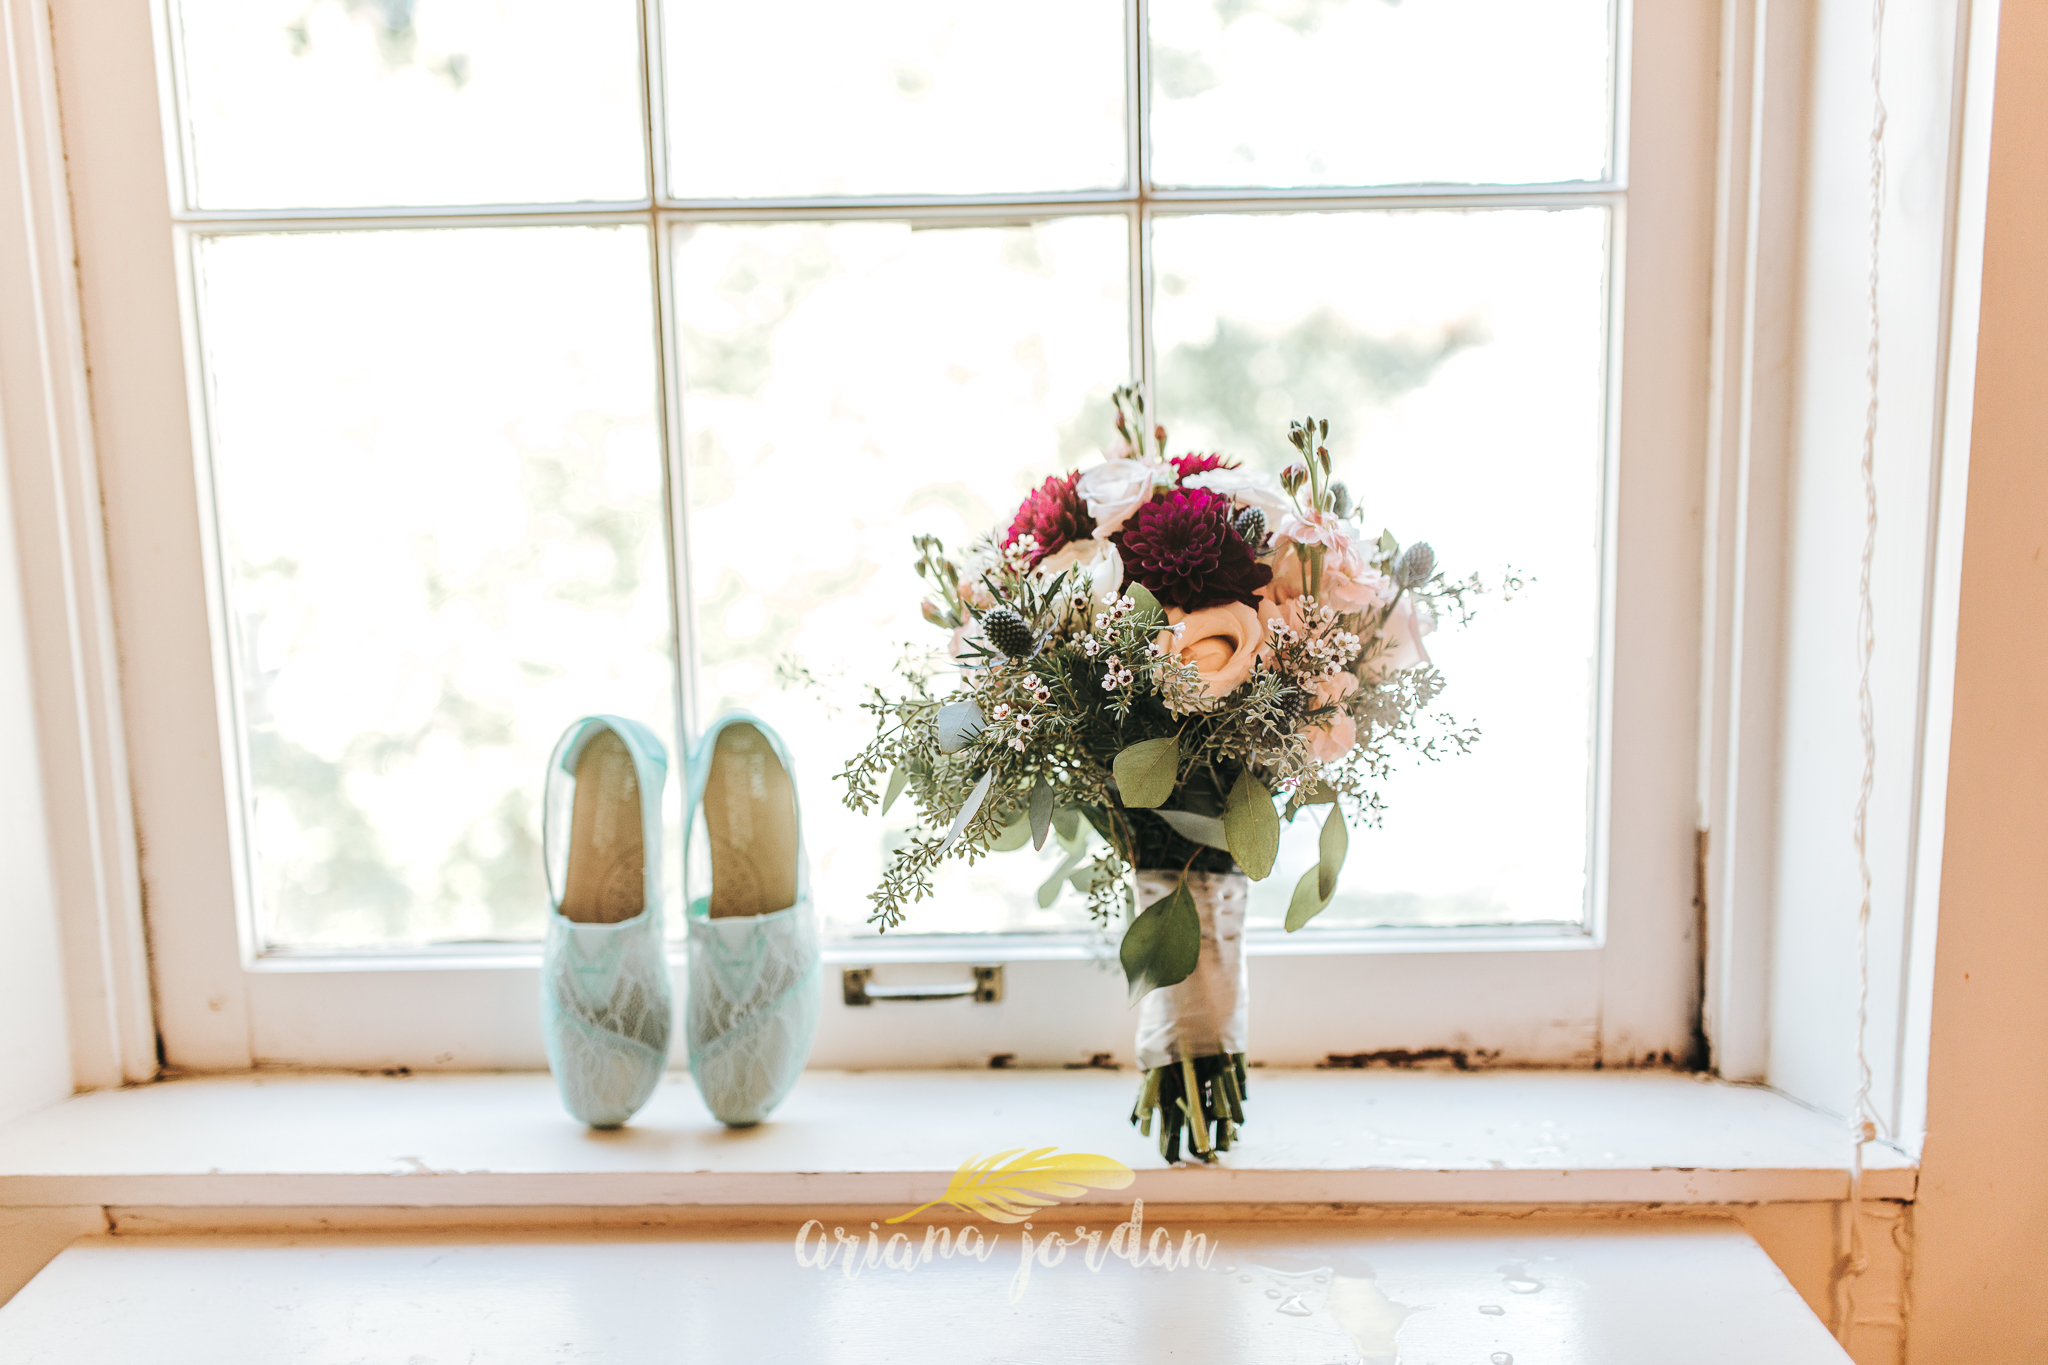 015 Ariana Jordan Photography - Ashley Inn Wedding Photographer 9313.jpg